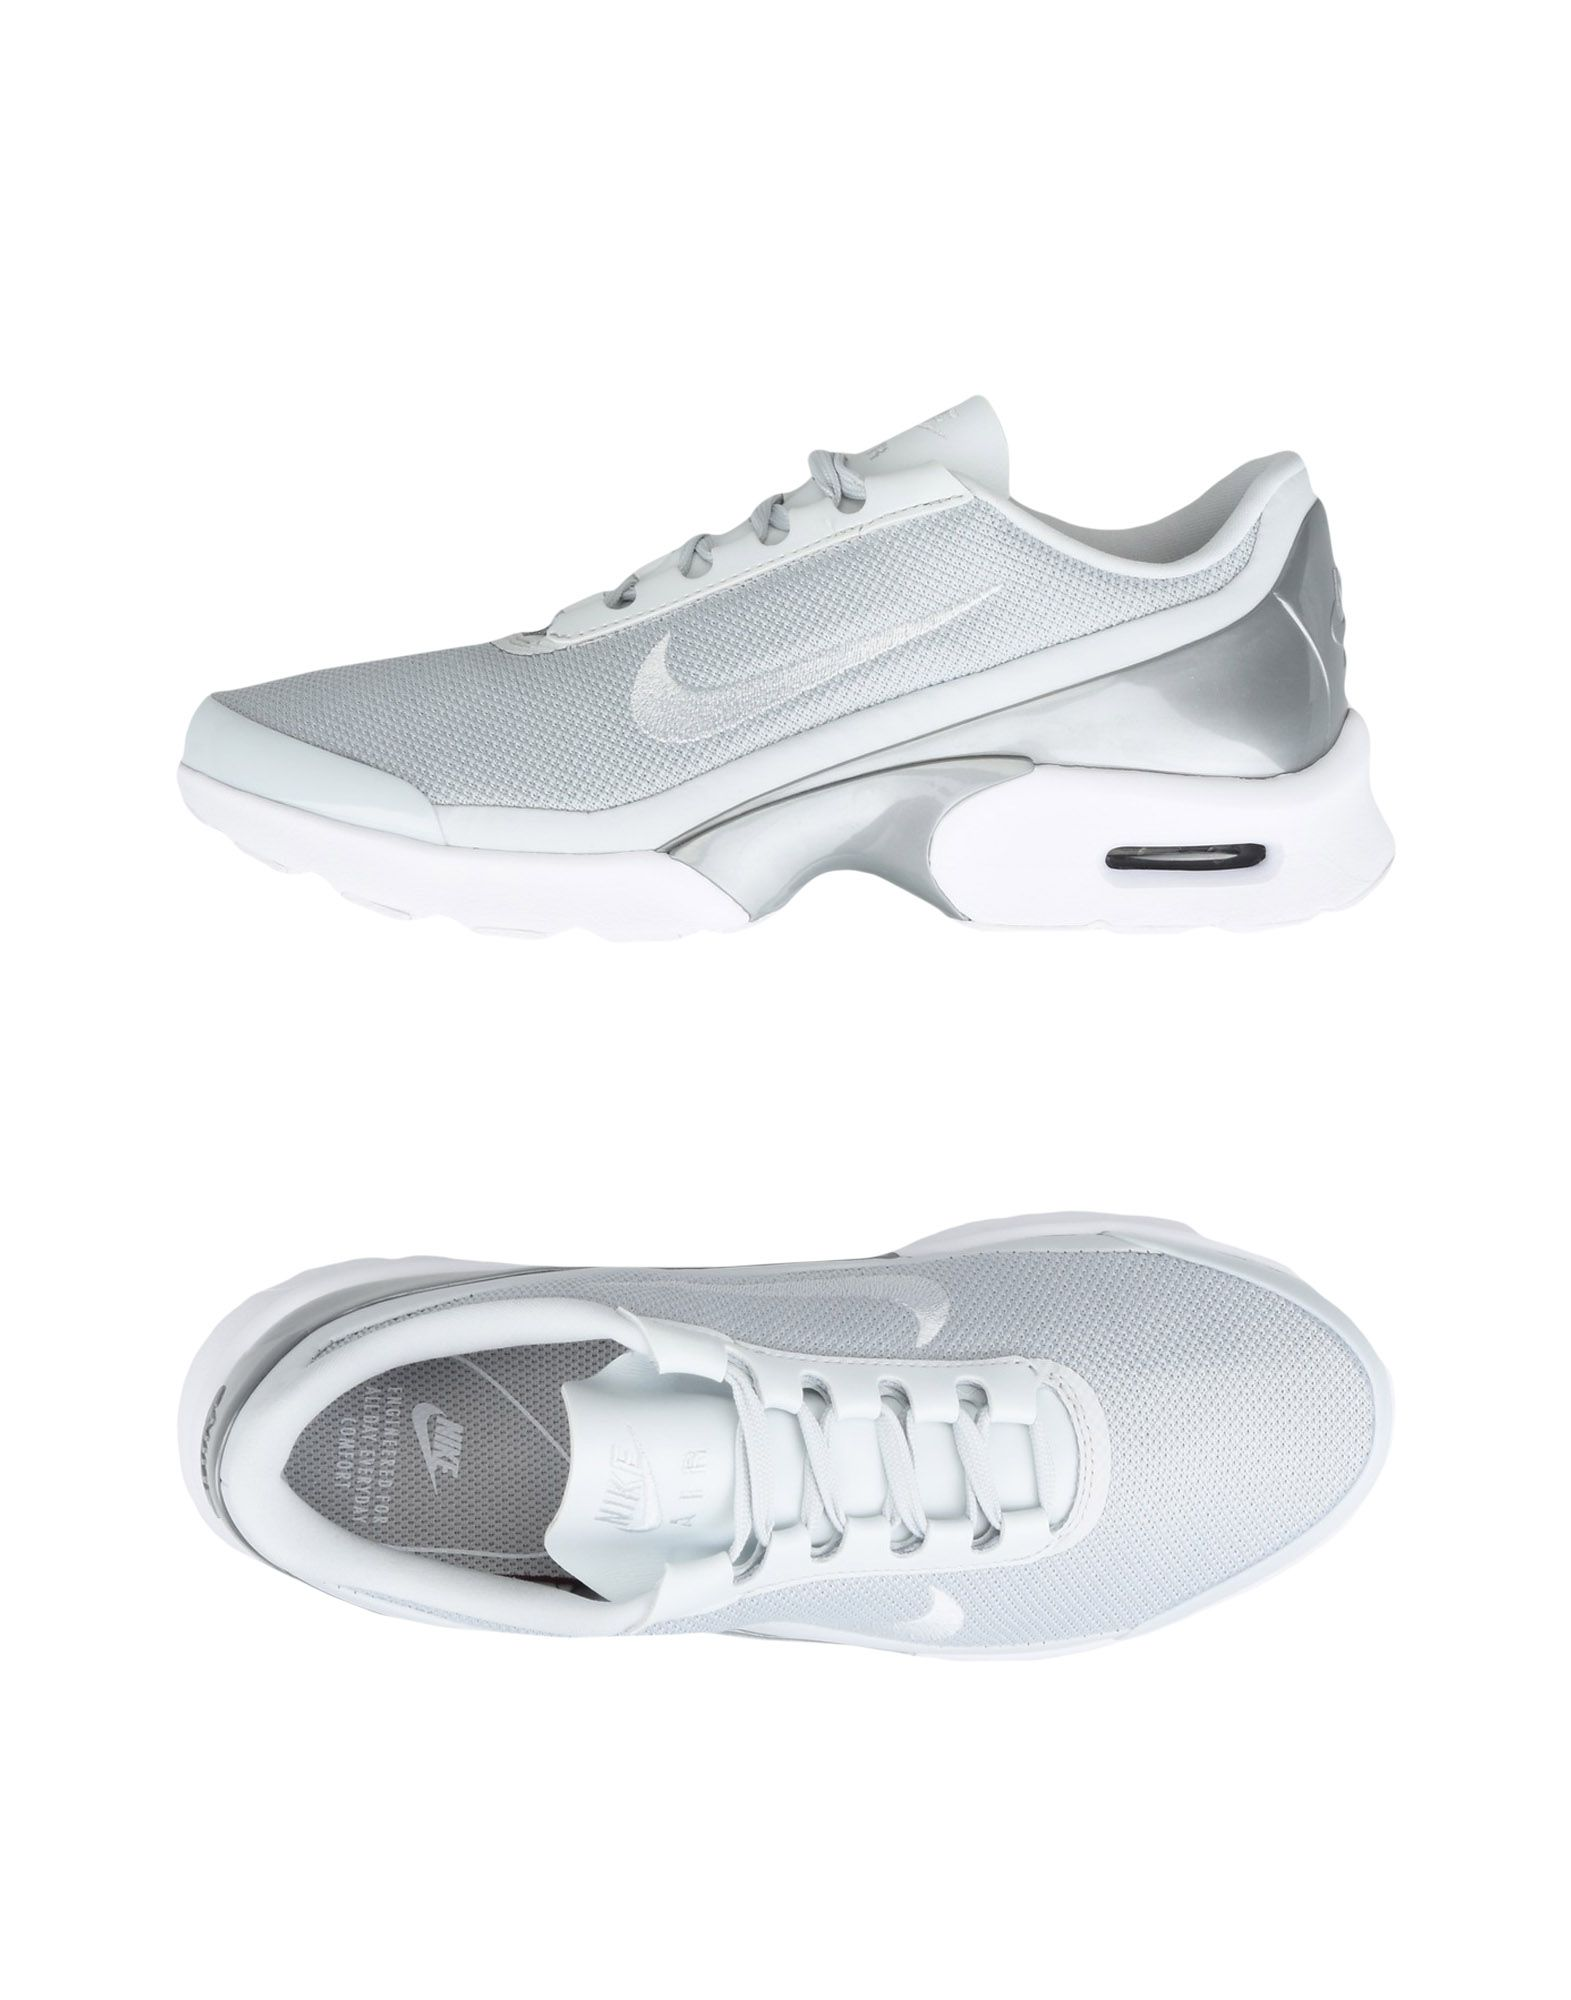 Sneakers Nike   Air Max Jewell Premium - Femme - Sneakers Nike sur